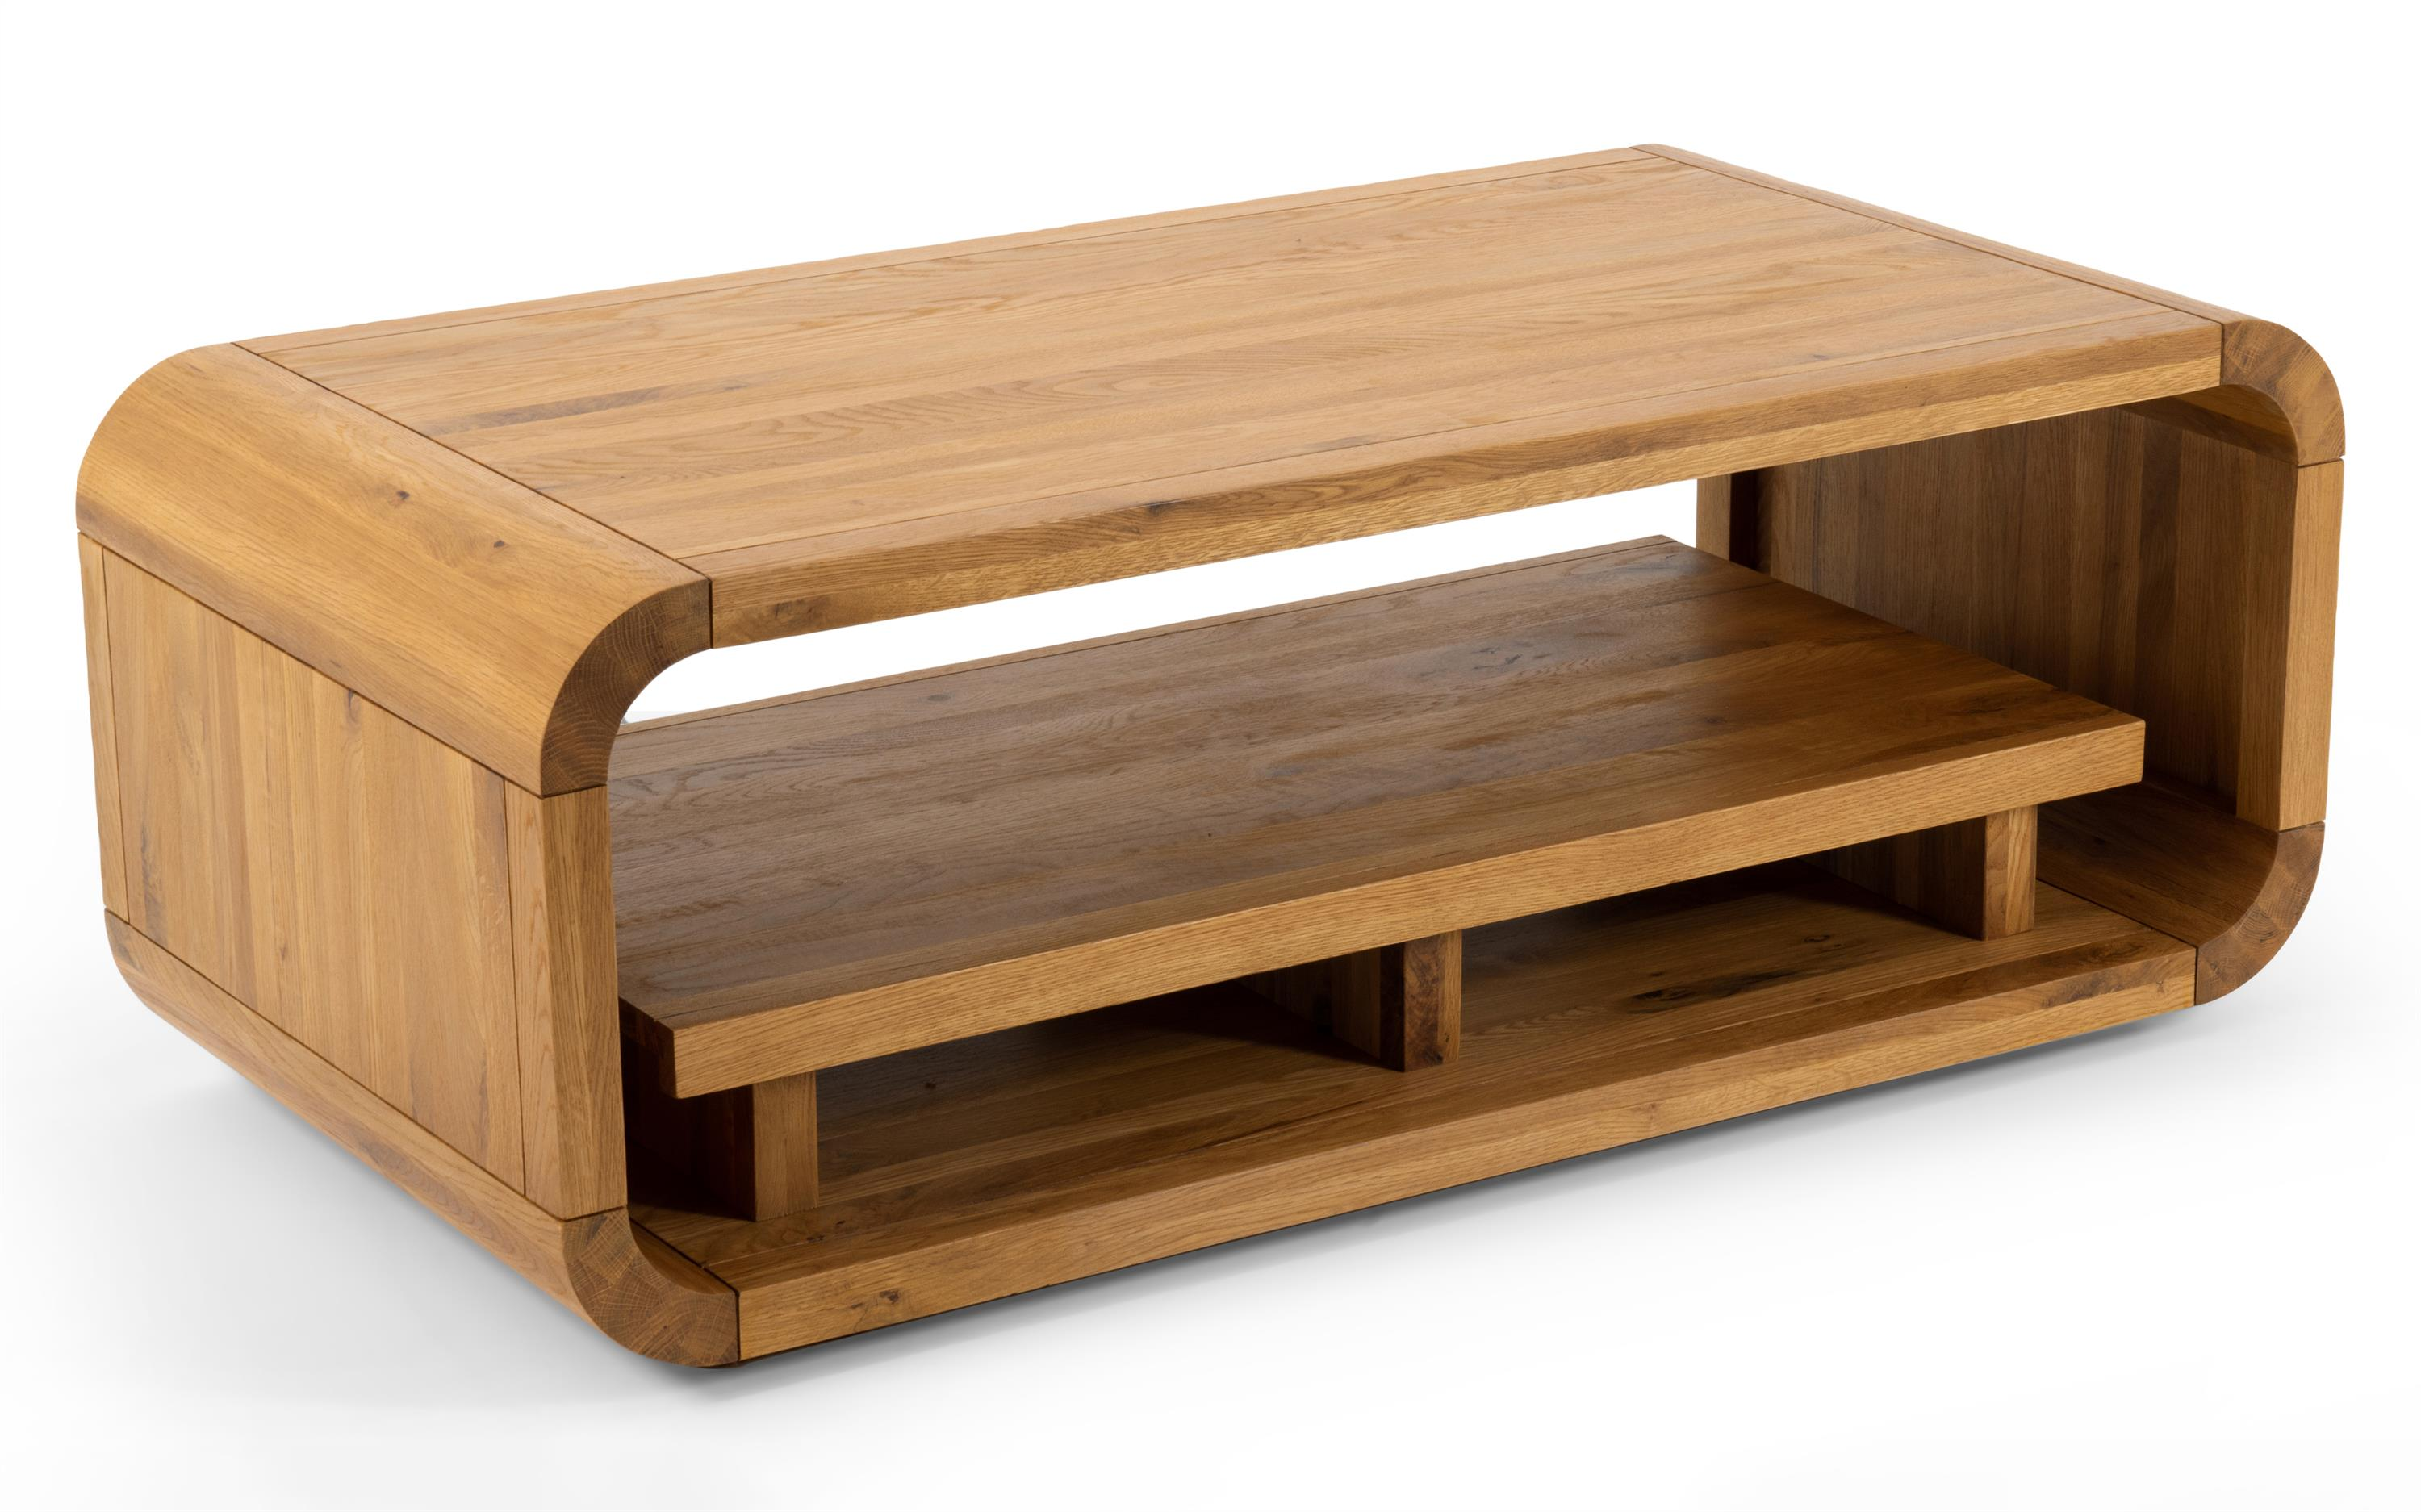 Oak Lounge Coffee Table with Shelf, , large